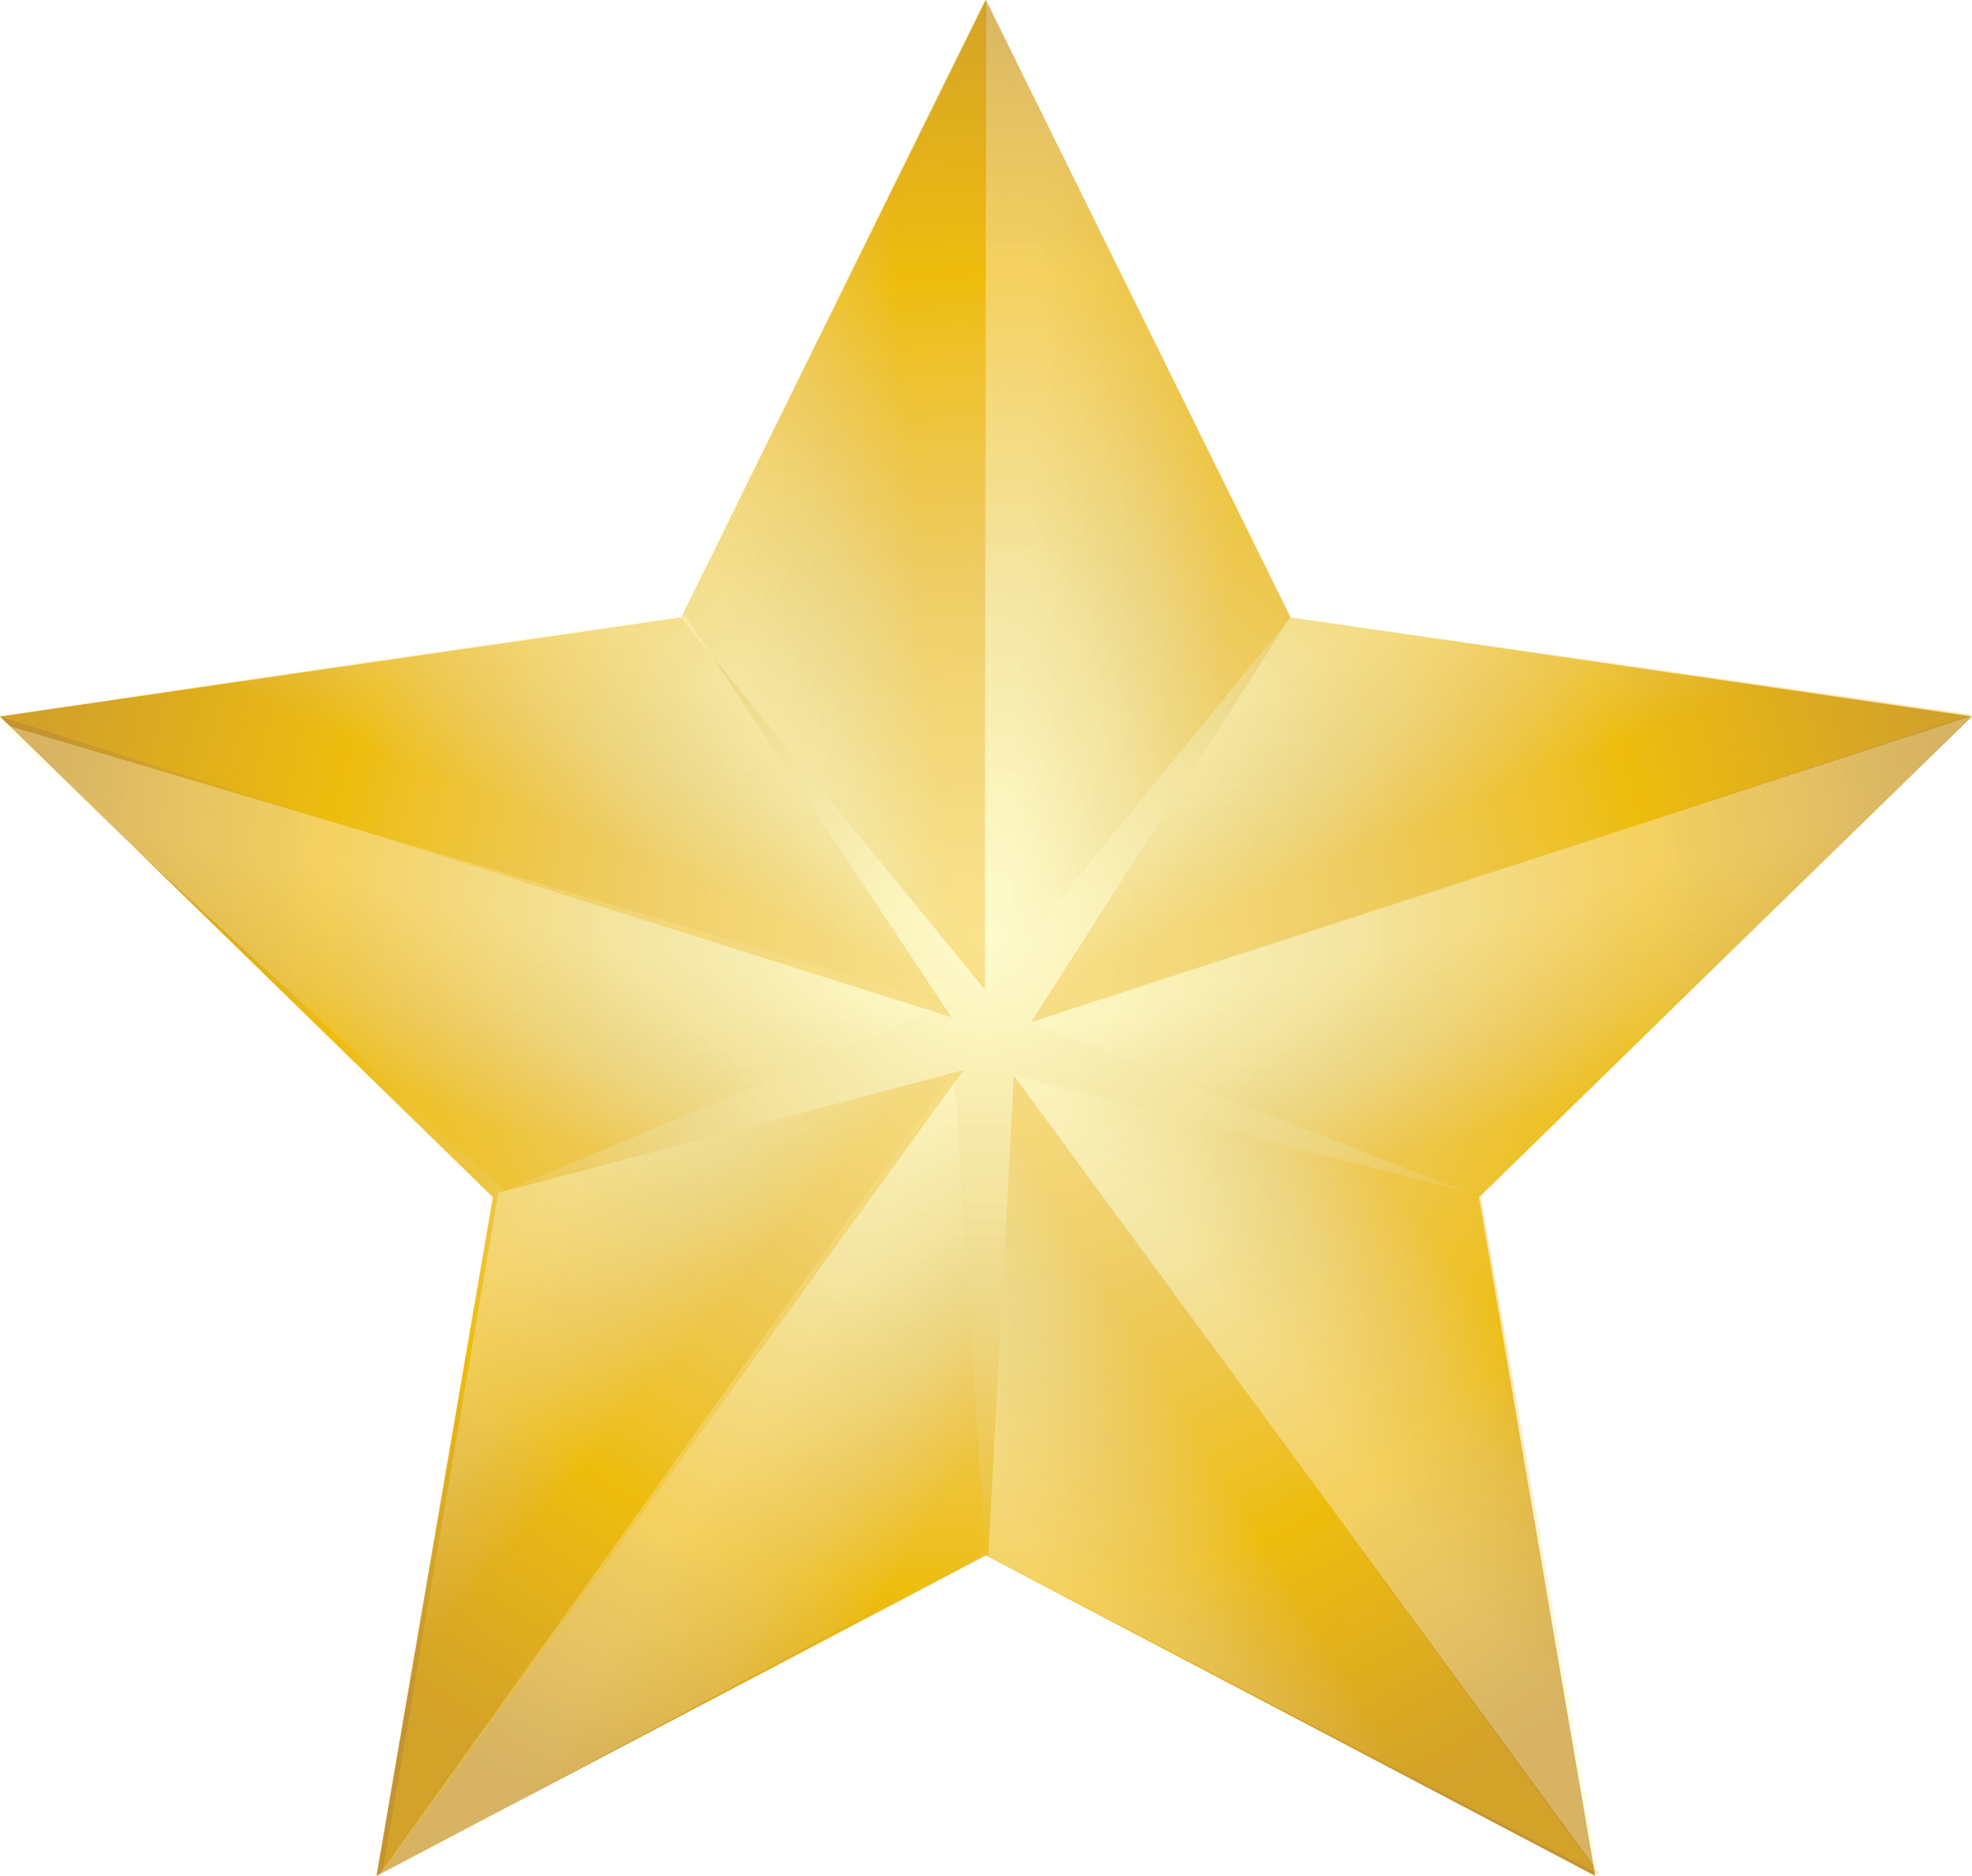 Gold Star Award Clip Art ..-Gold Star Award Clip Art ..-8